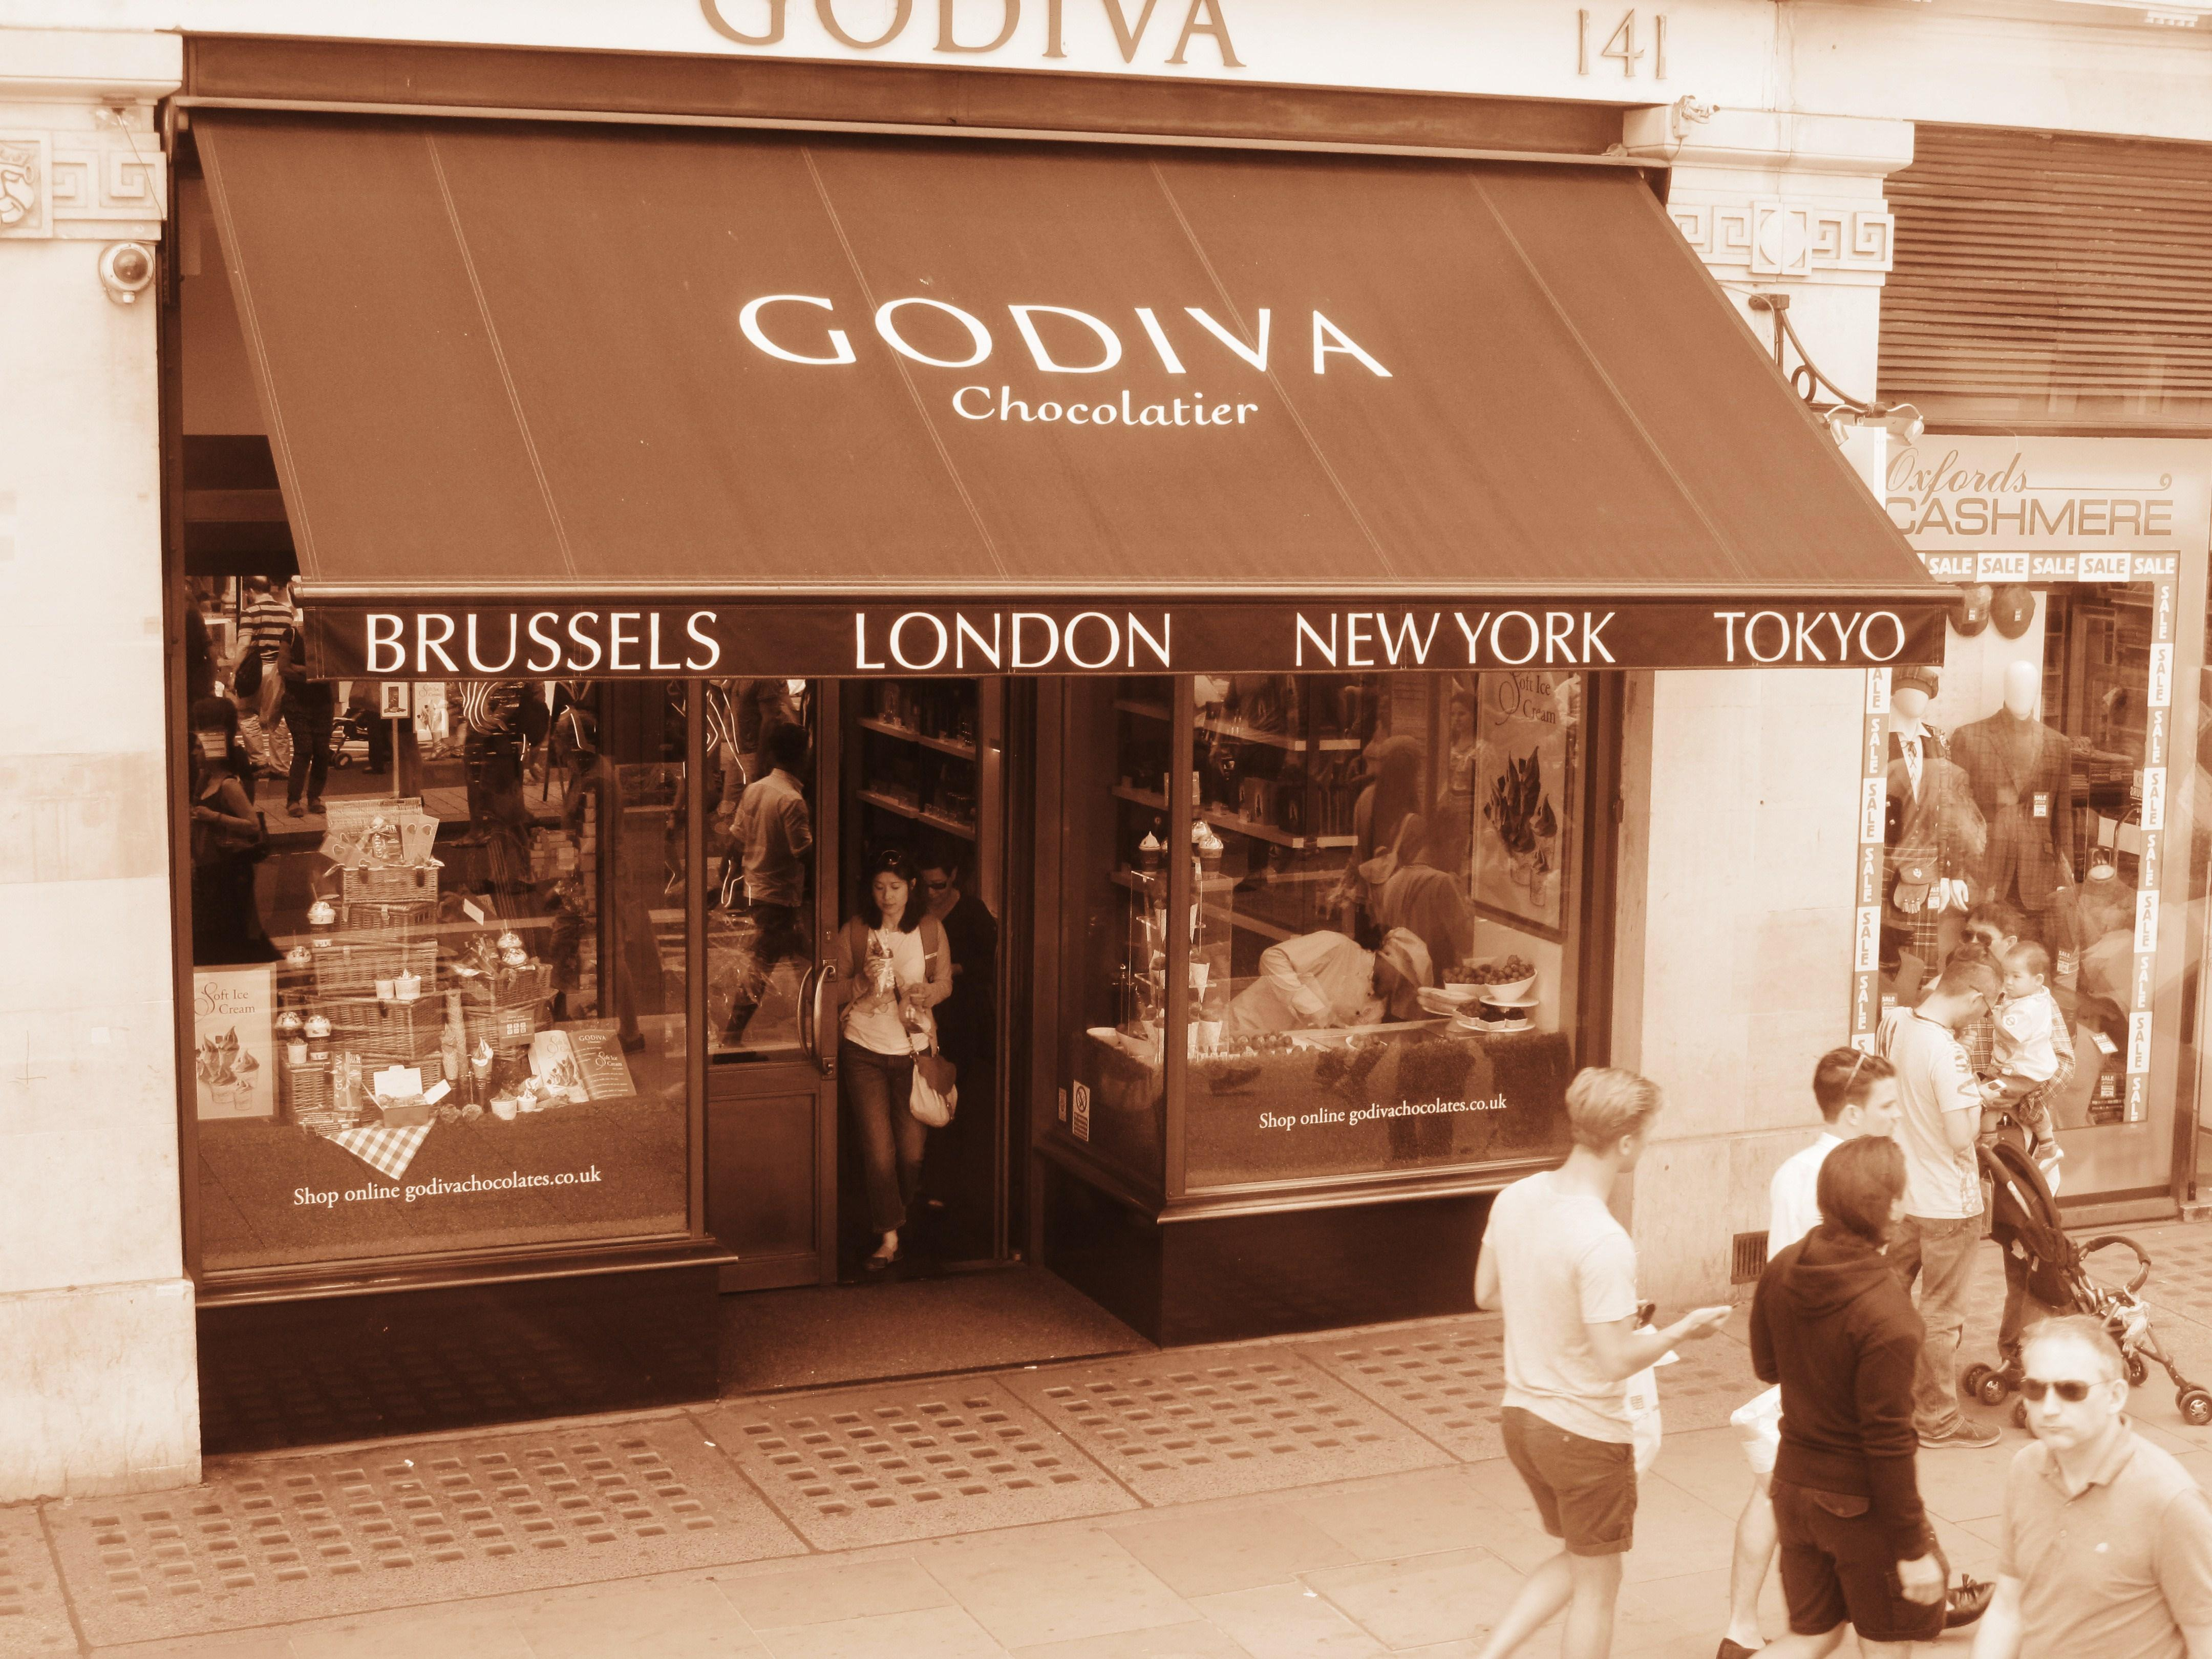 File:Godiva Chocolatier, Regent Street, London, 22 June 2014.jpg